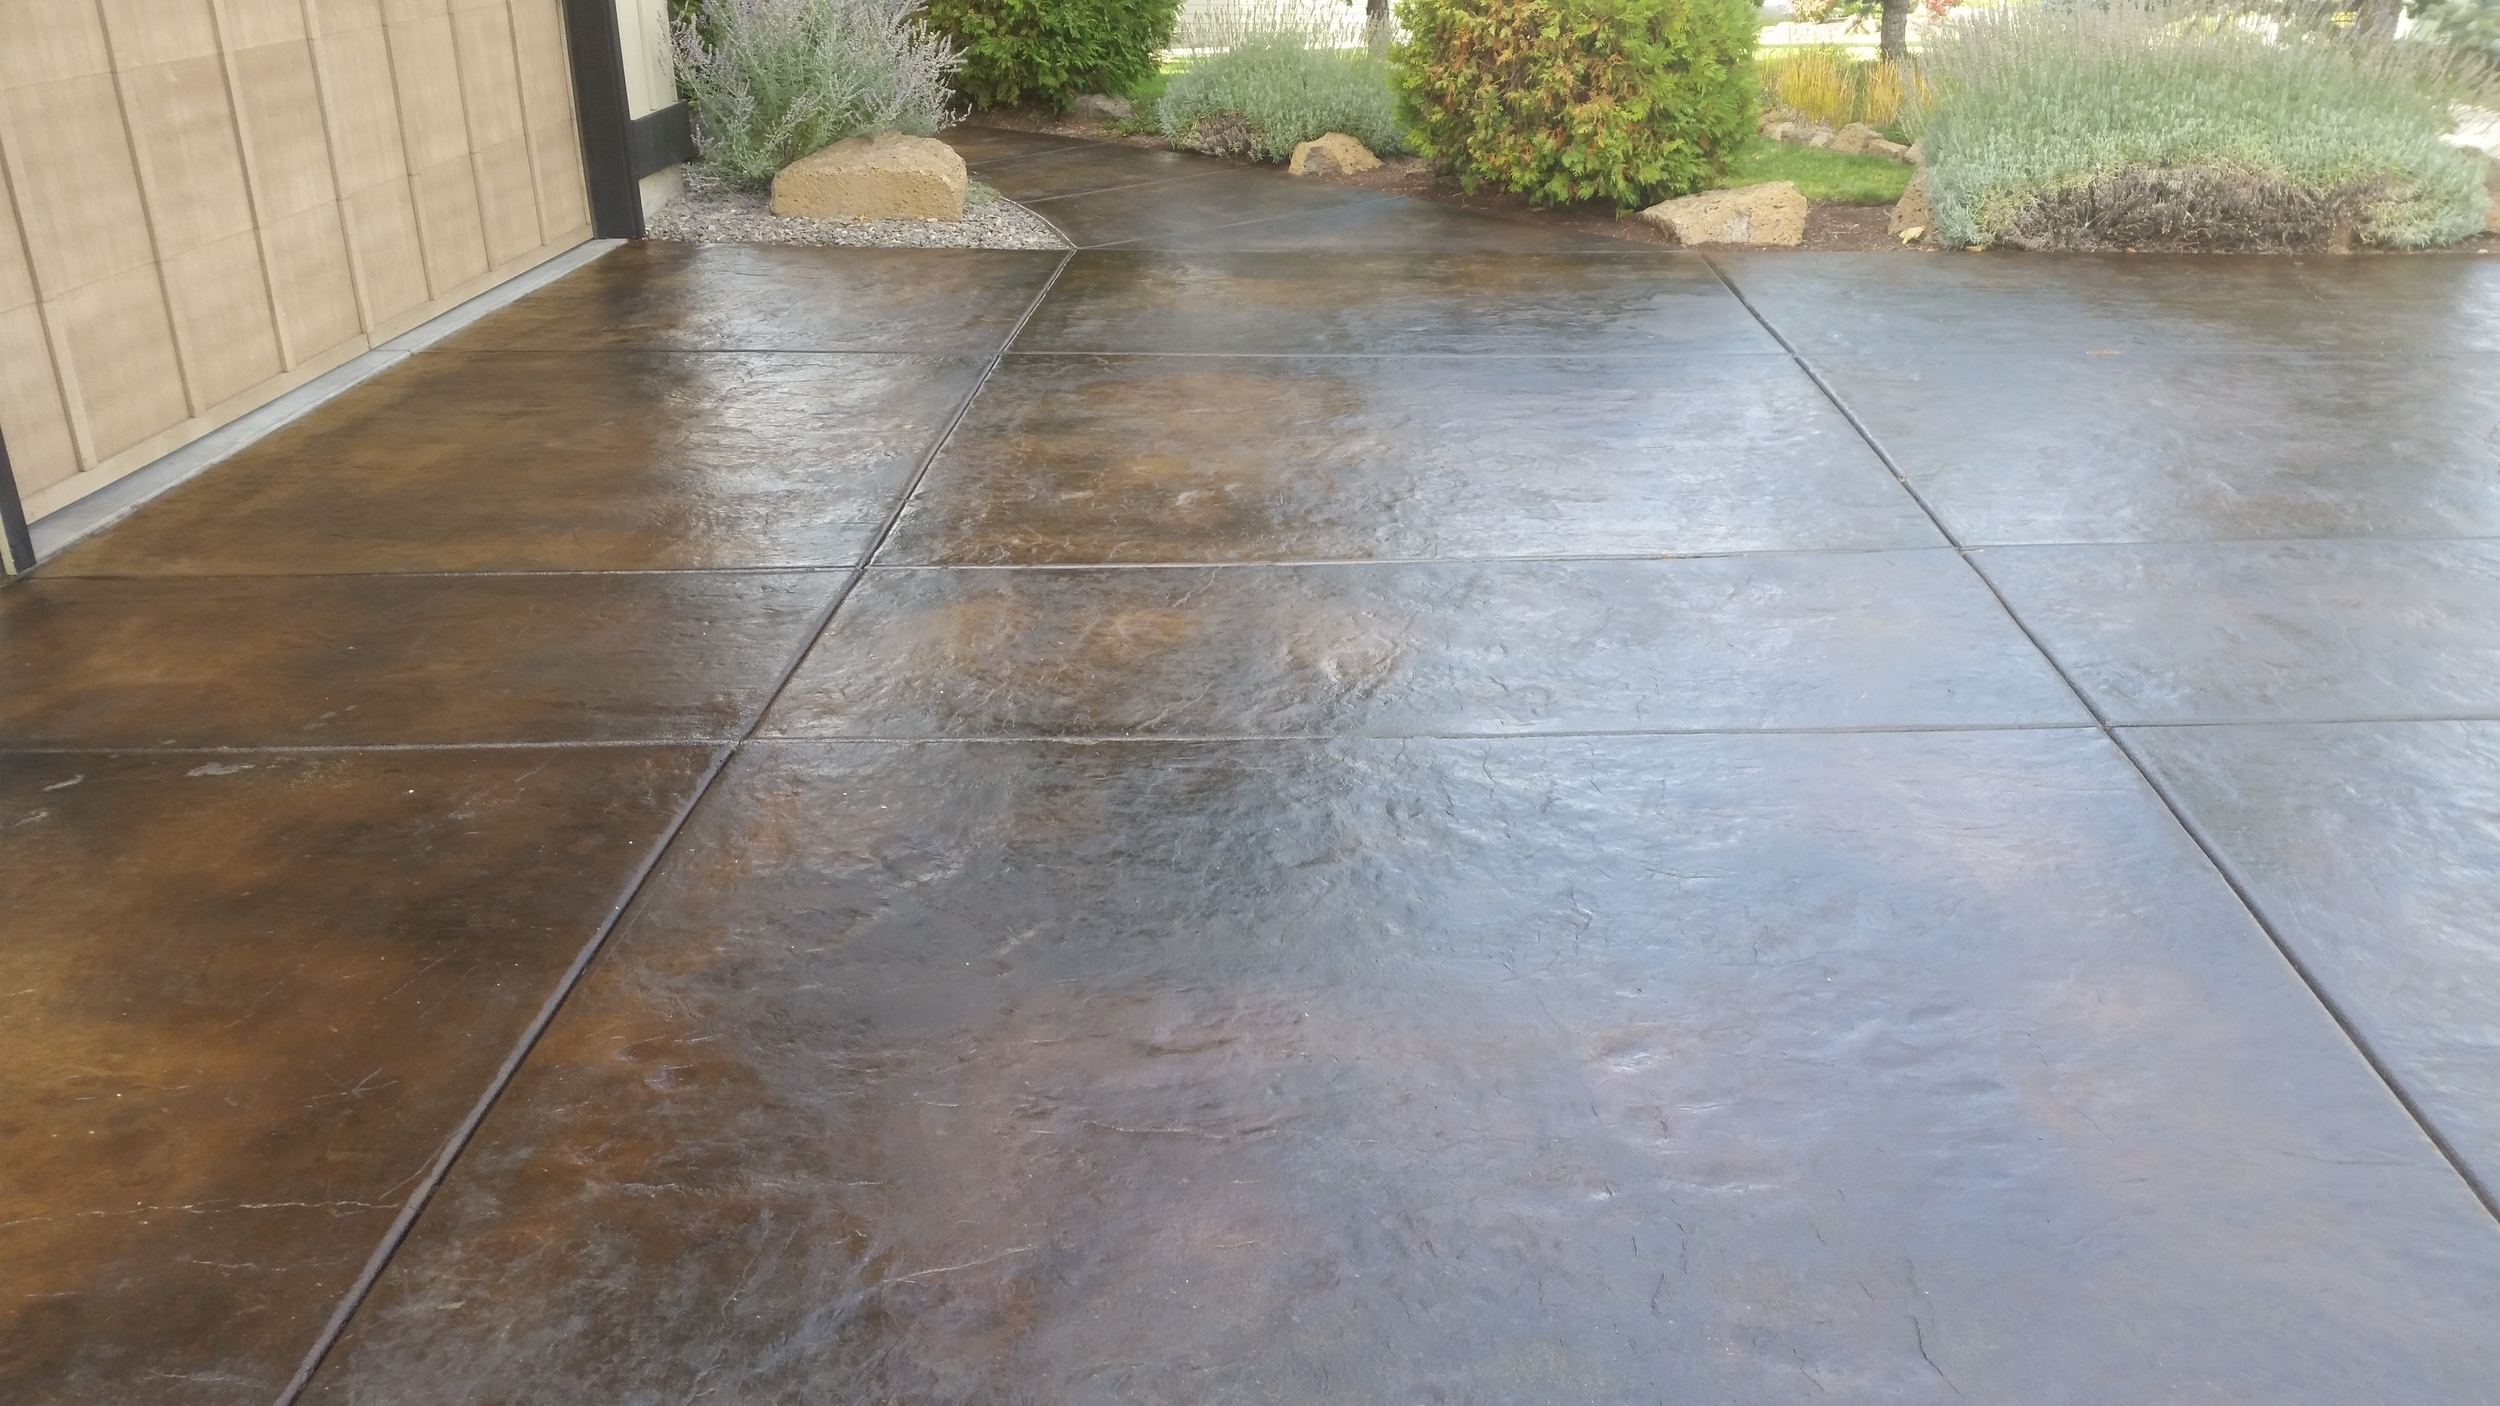 Concrete Sealing and Specialty Coatings